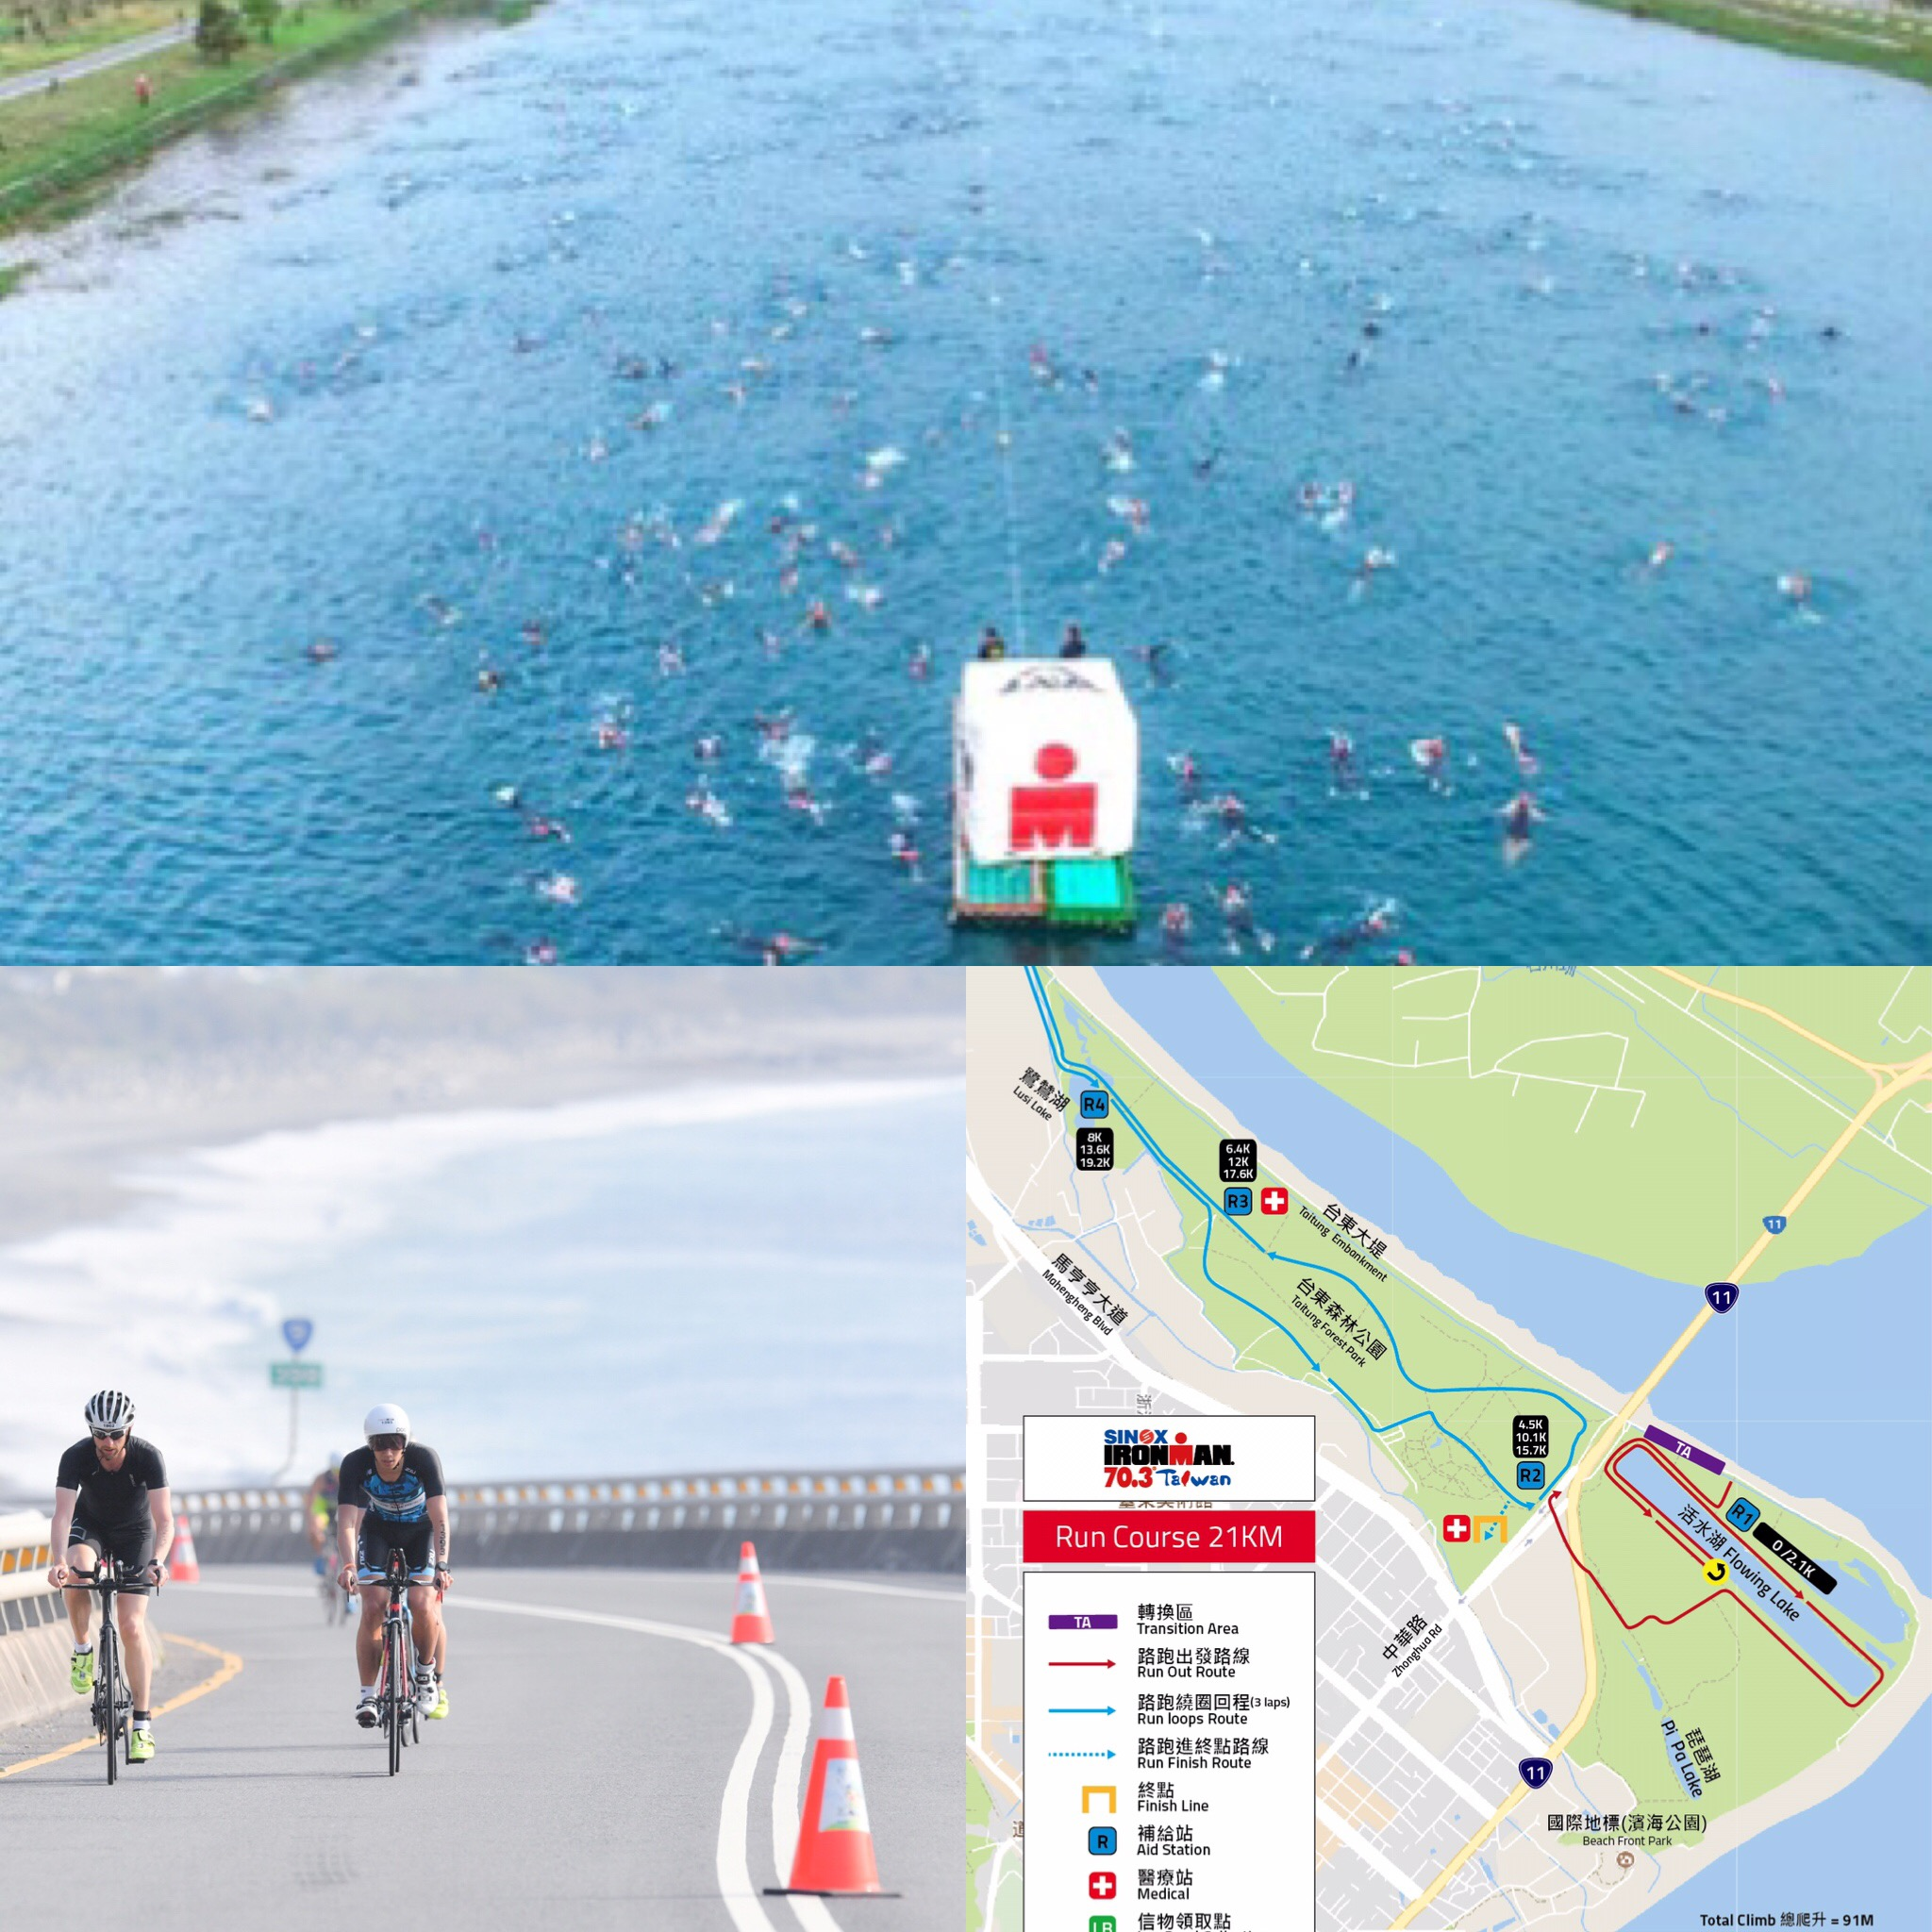 Easy swim? Flat bike and run course?